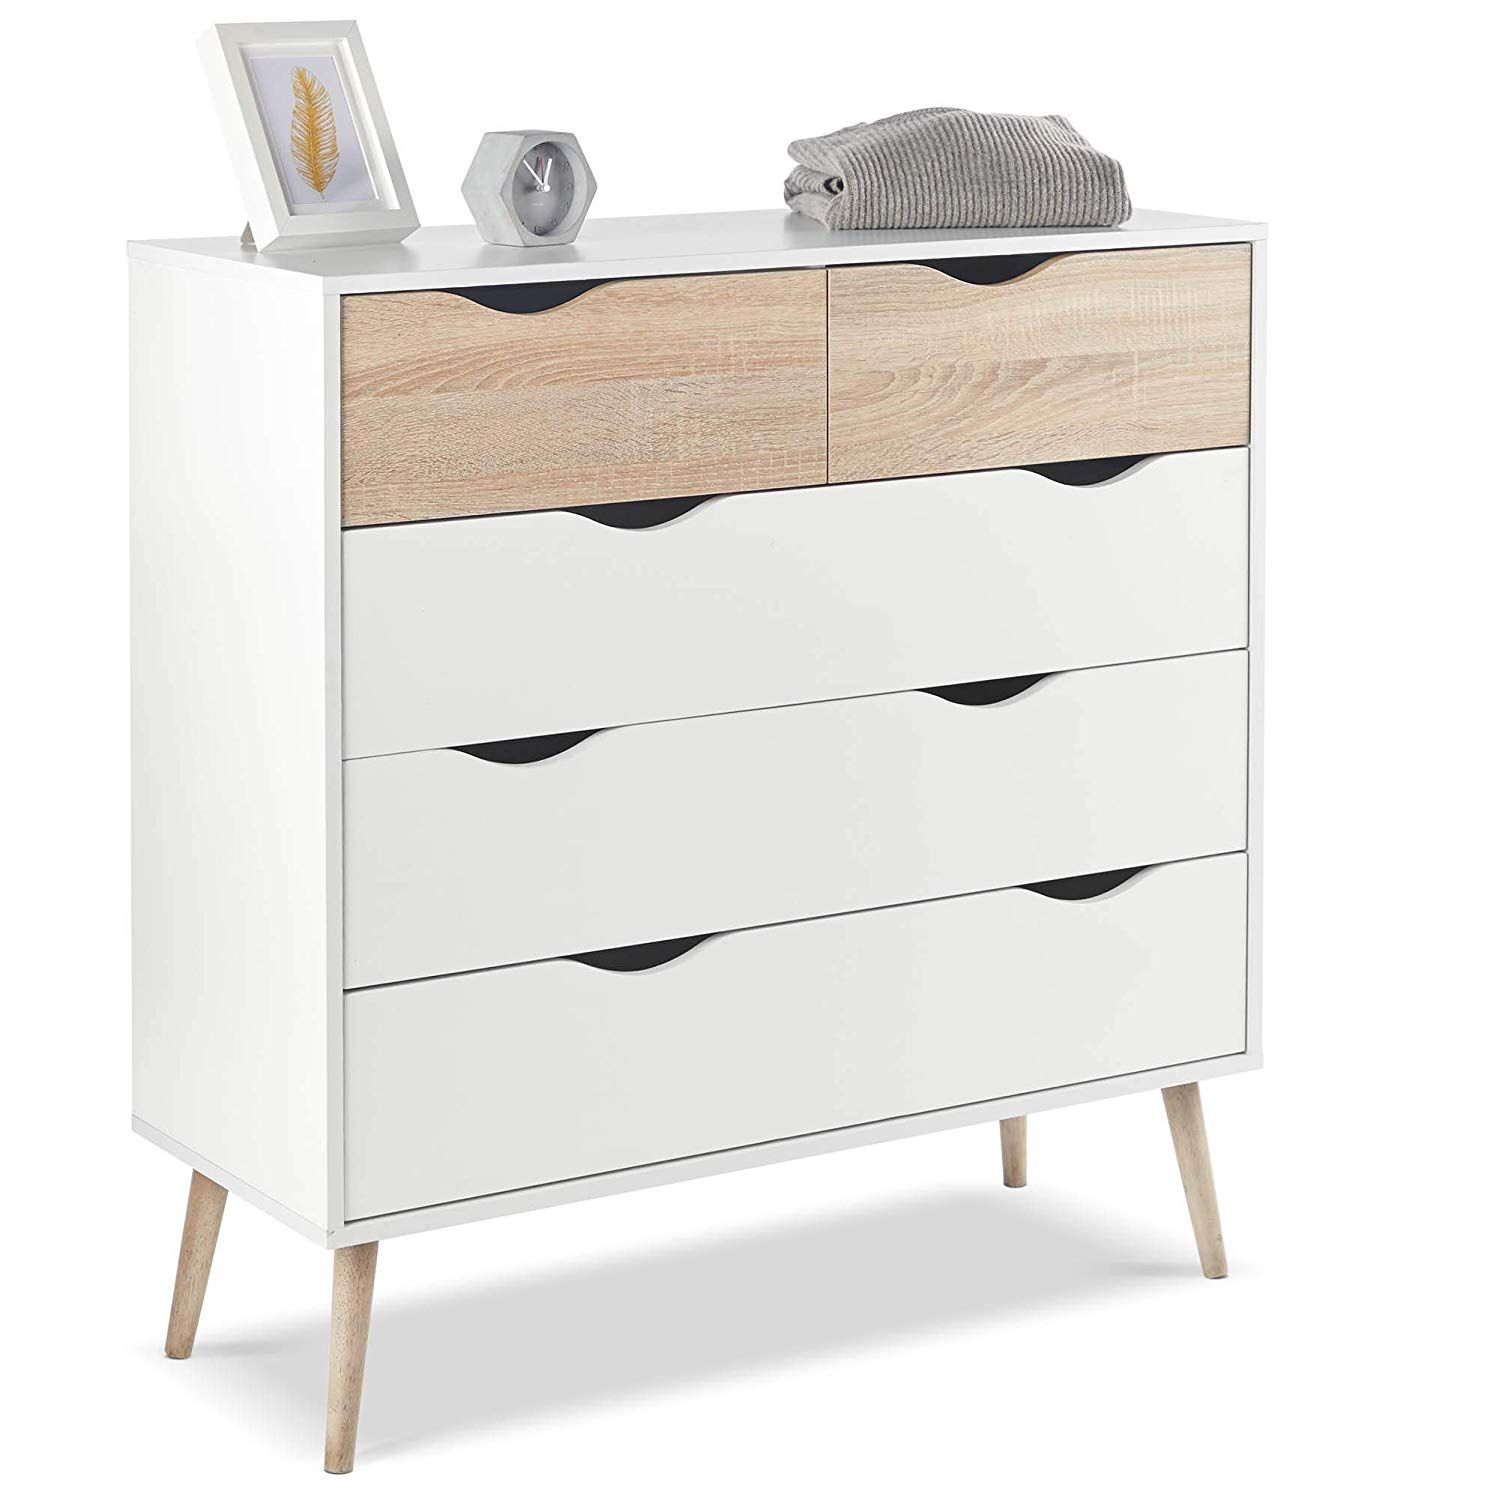 Vonhaus Chest Of Drawers Scandinavian Nordic Style White And Light Oak Effect With White Oak Furniture White Chest Of Drawers Contemporary Bedroom Furniture